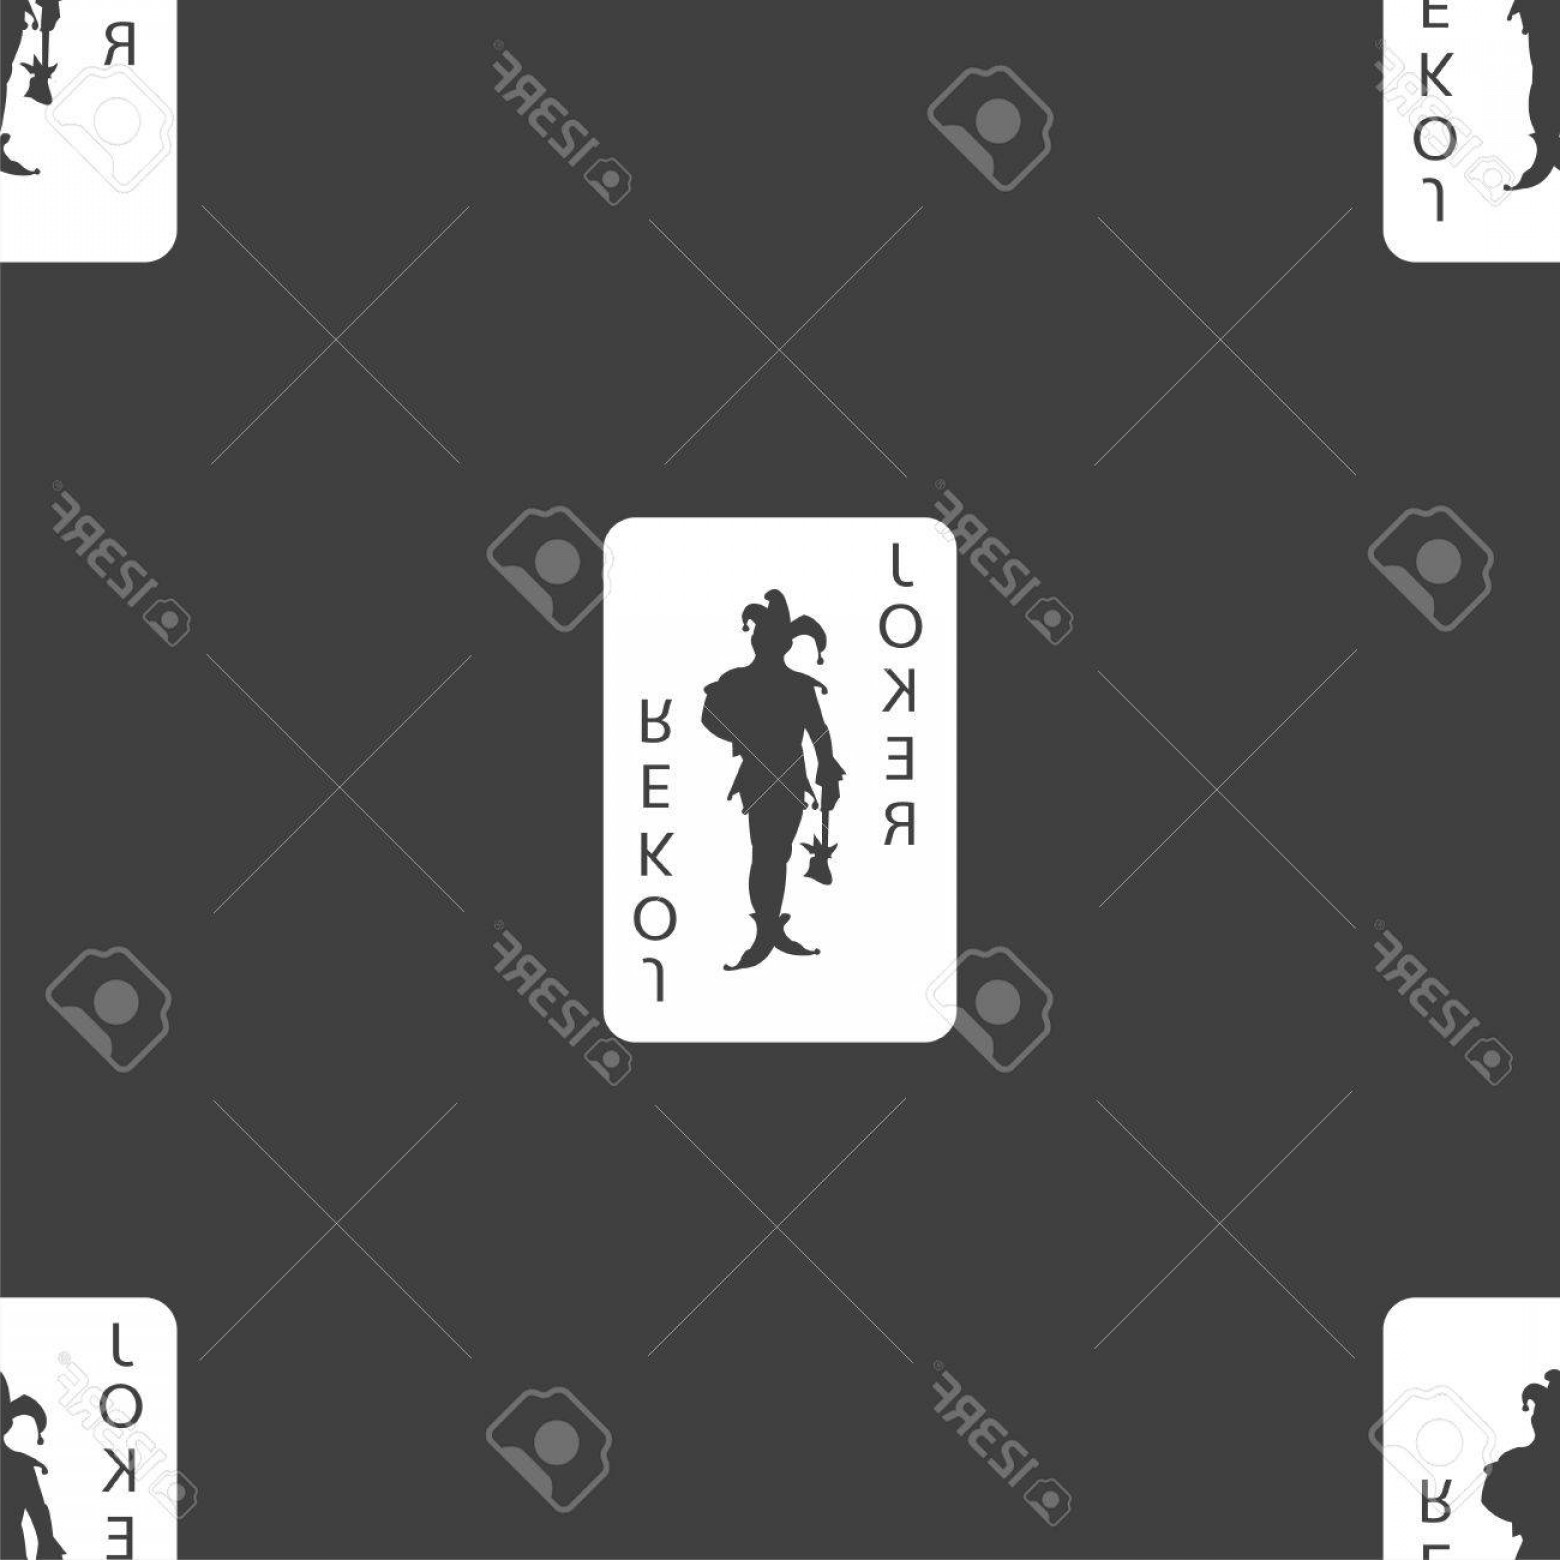 Single Playing Card Vector: Photoegyscages Jcatcakkcartya Joker Ikon Jel Zcbkkencmentes Minta Egy Szcbcrke Hcattcar Vektor Illusztrcacicb